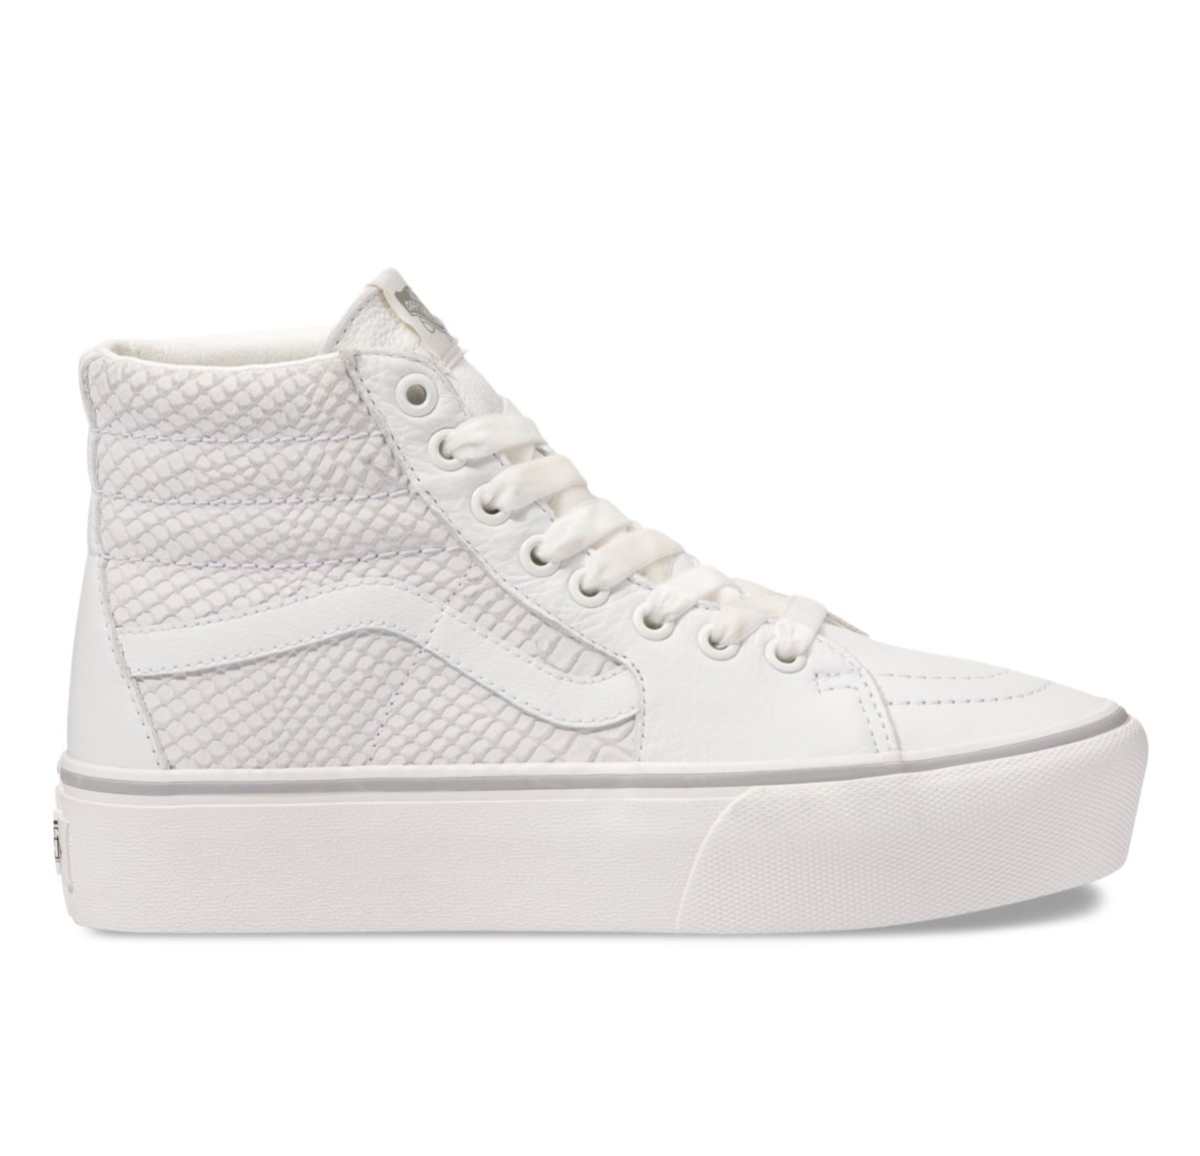 white leather high top vans